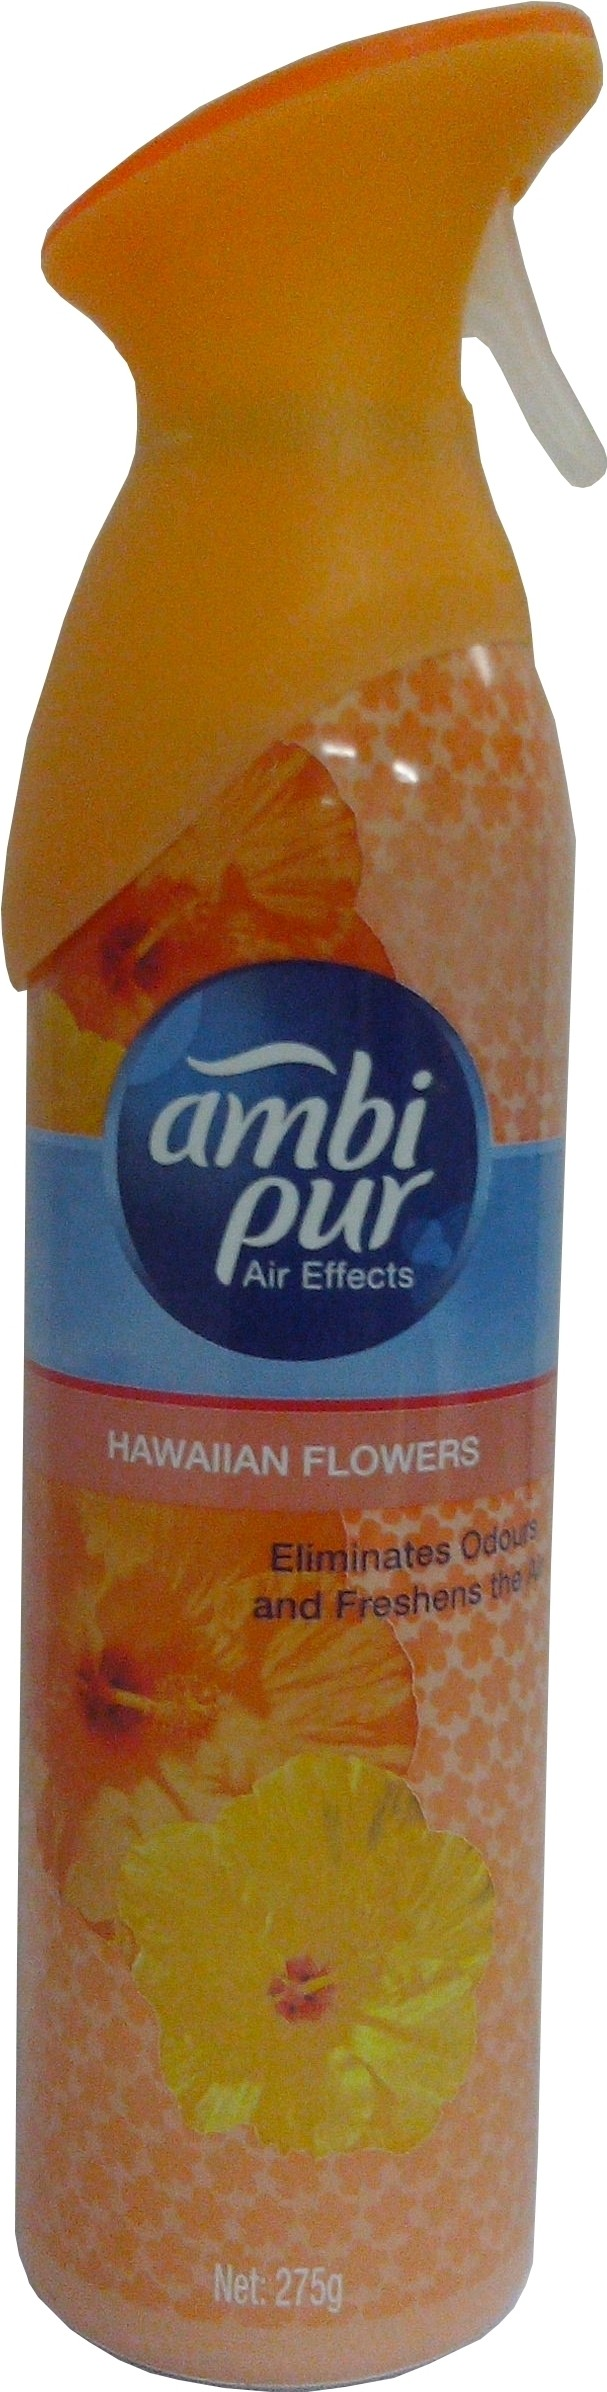 Buy ambi pur air effects hawaiian flowers aerosol air freshener 275 ambi pur air effects hawaiian flowers aerosol air freshener 275 g izmirmasajfo